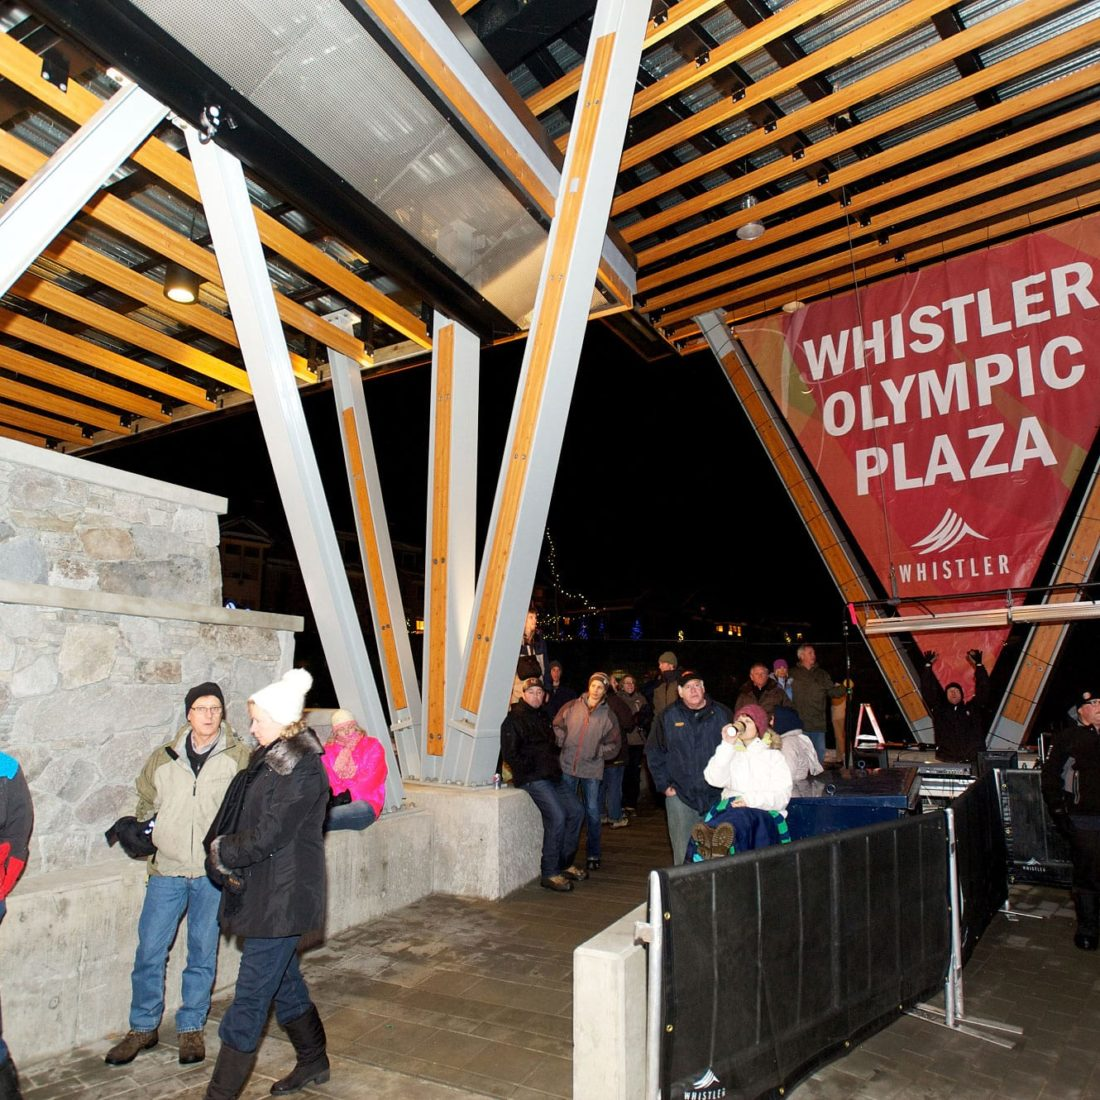 wsi-imageoptim-Whistler-Olympic-Plaza-action-1100x1100.jpg